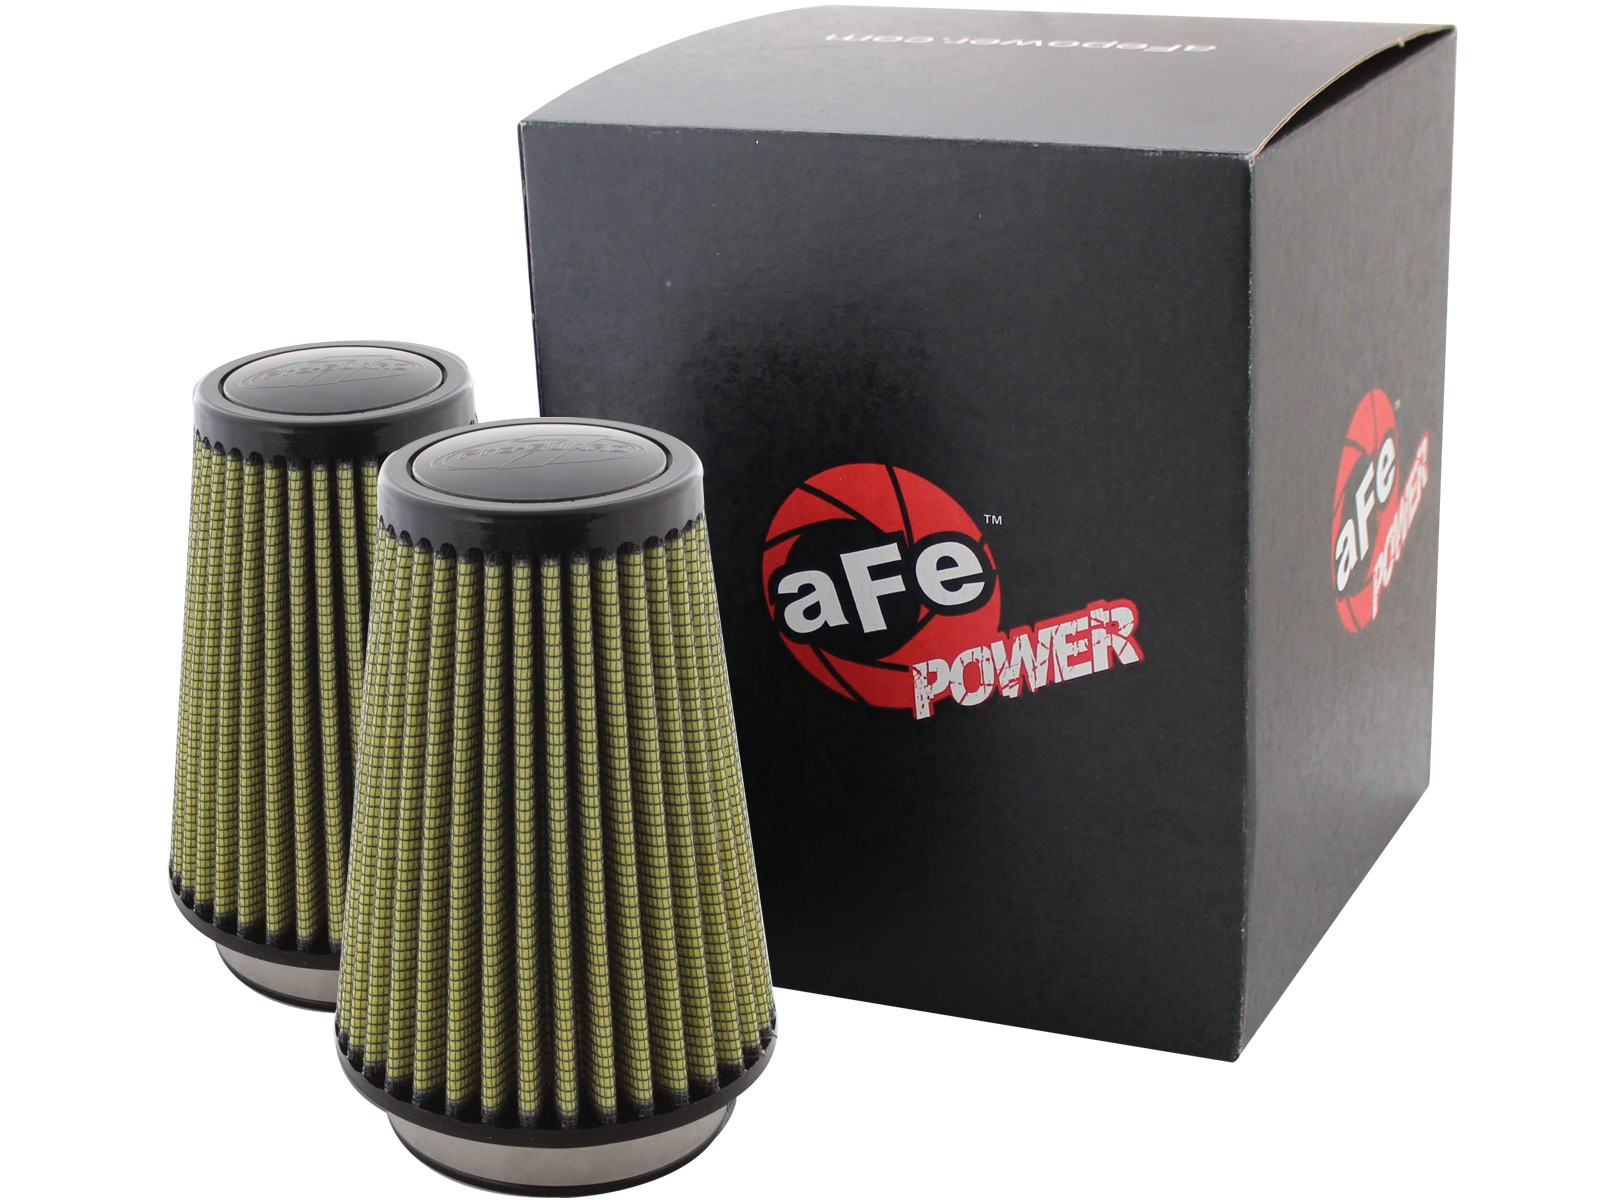 aFe POWER 72-90069M Magnum FLOW Pro GUARD7 Air Filter